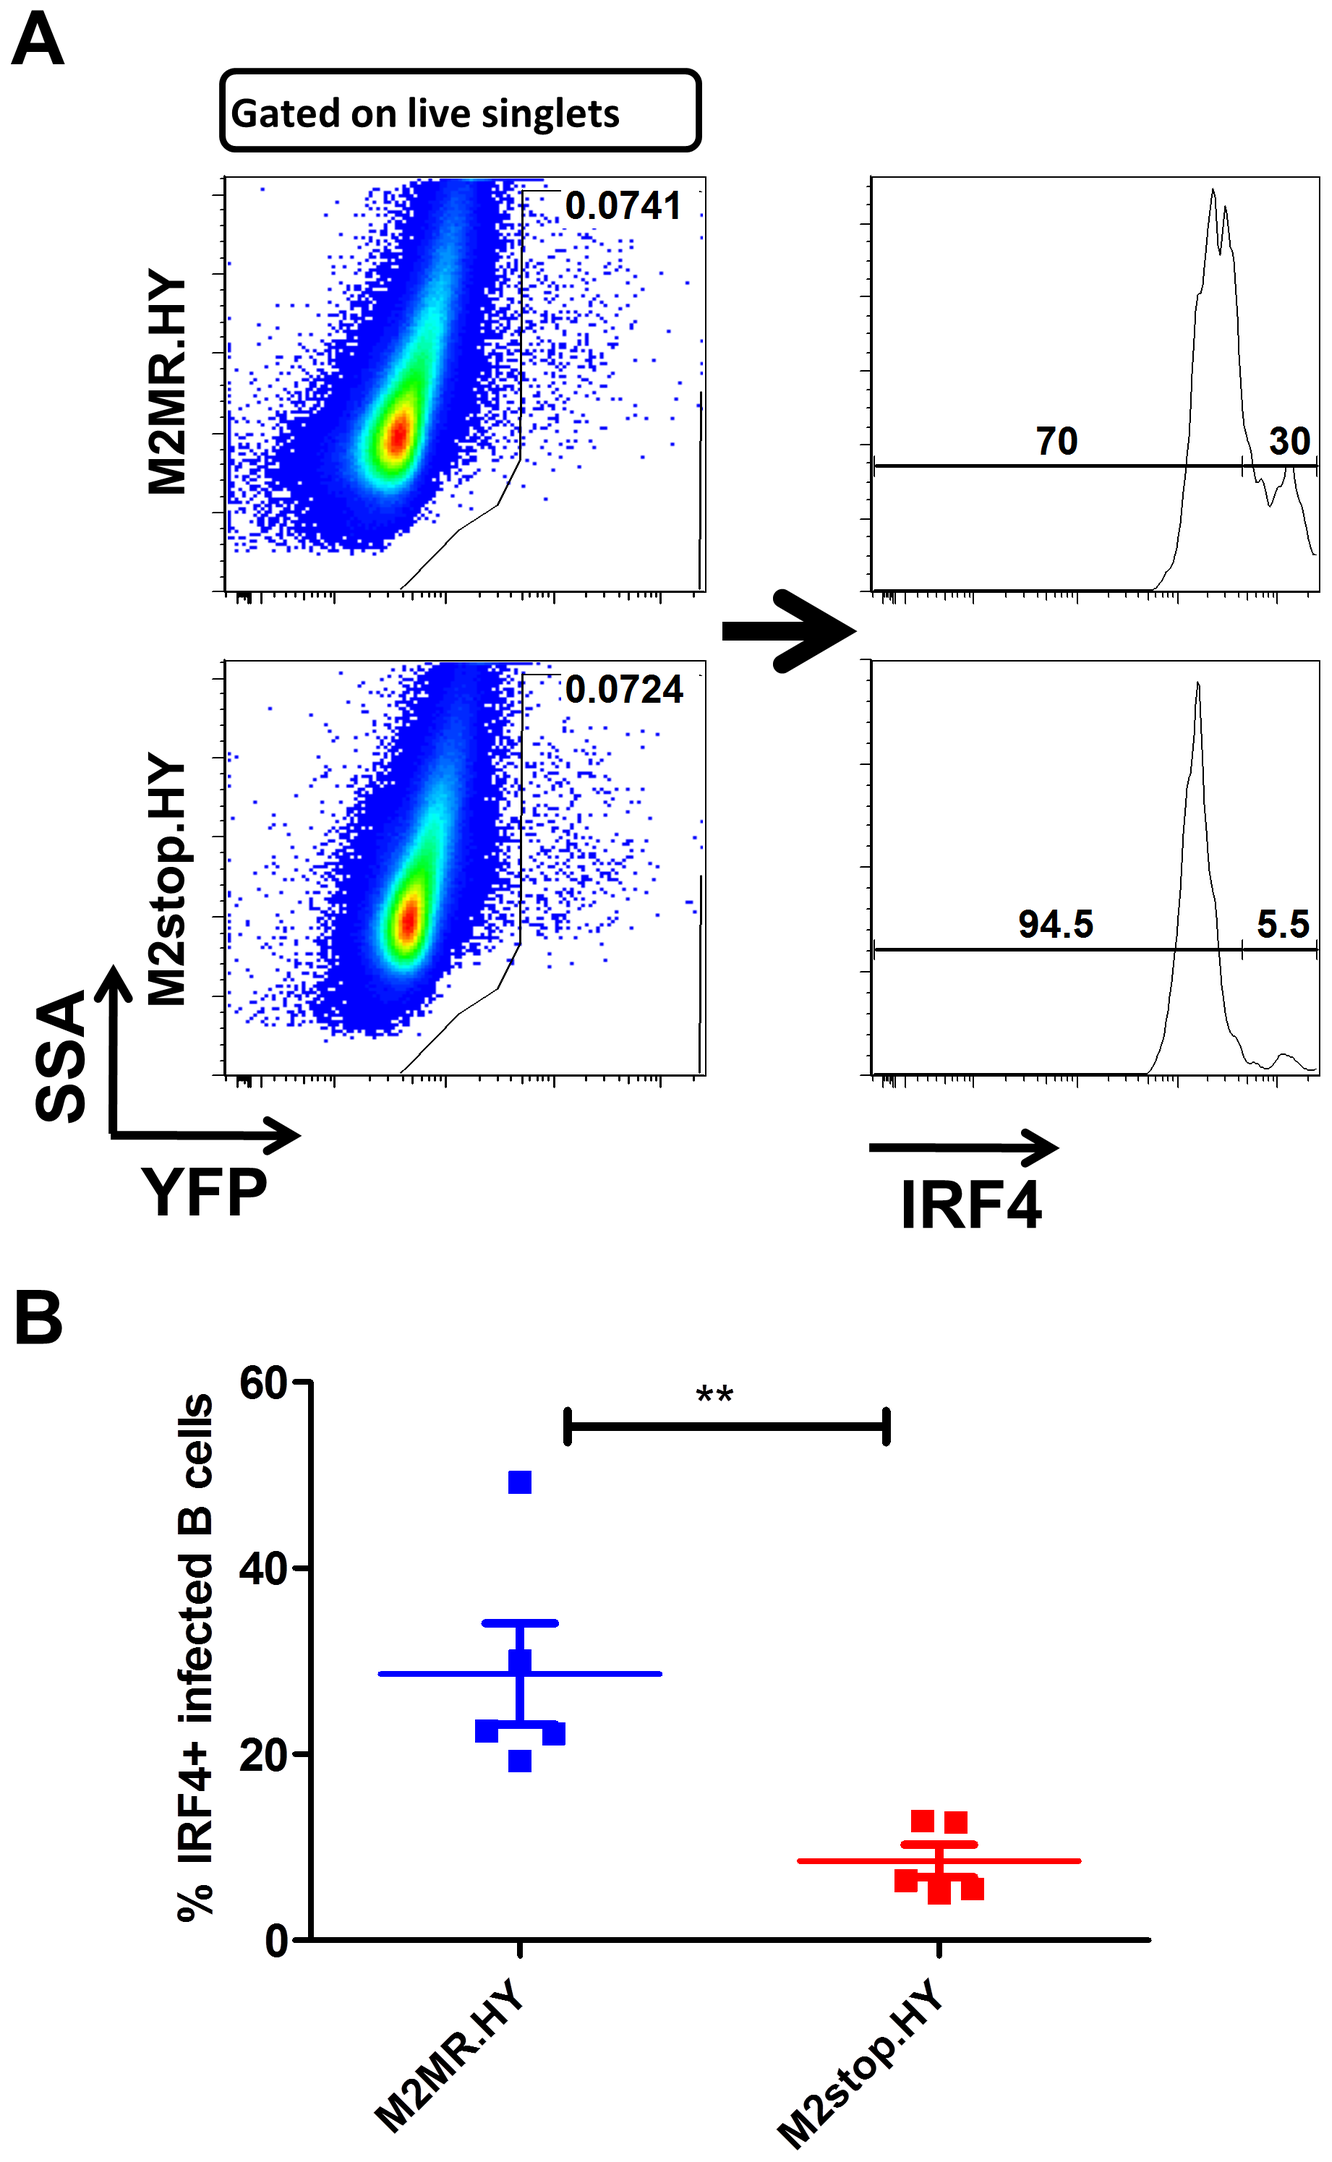 M2stop infected mice exhibit a decreased frequency of infected B cells expressing IRF4.